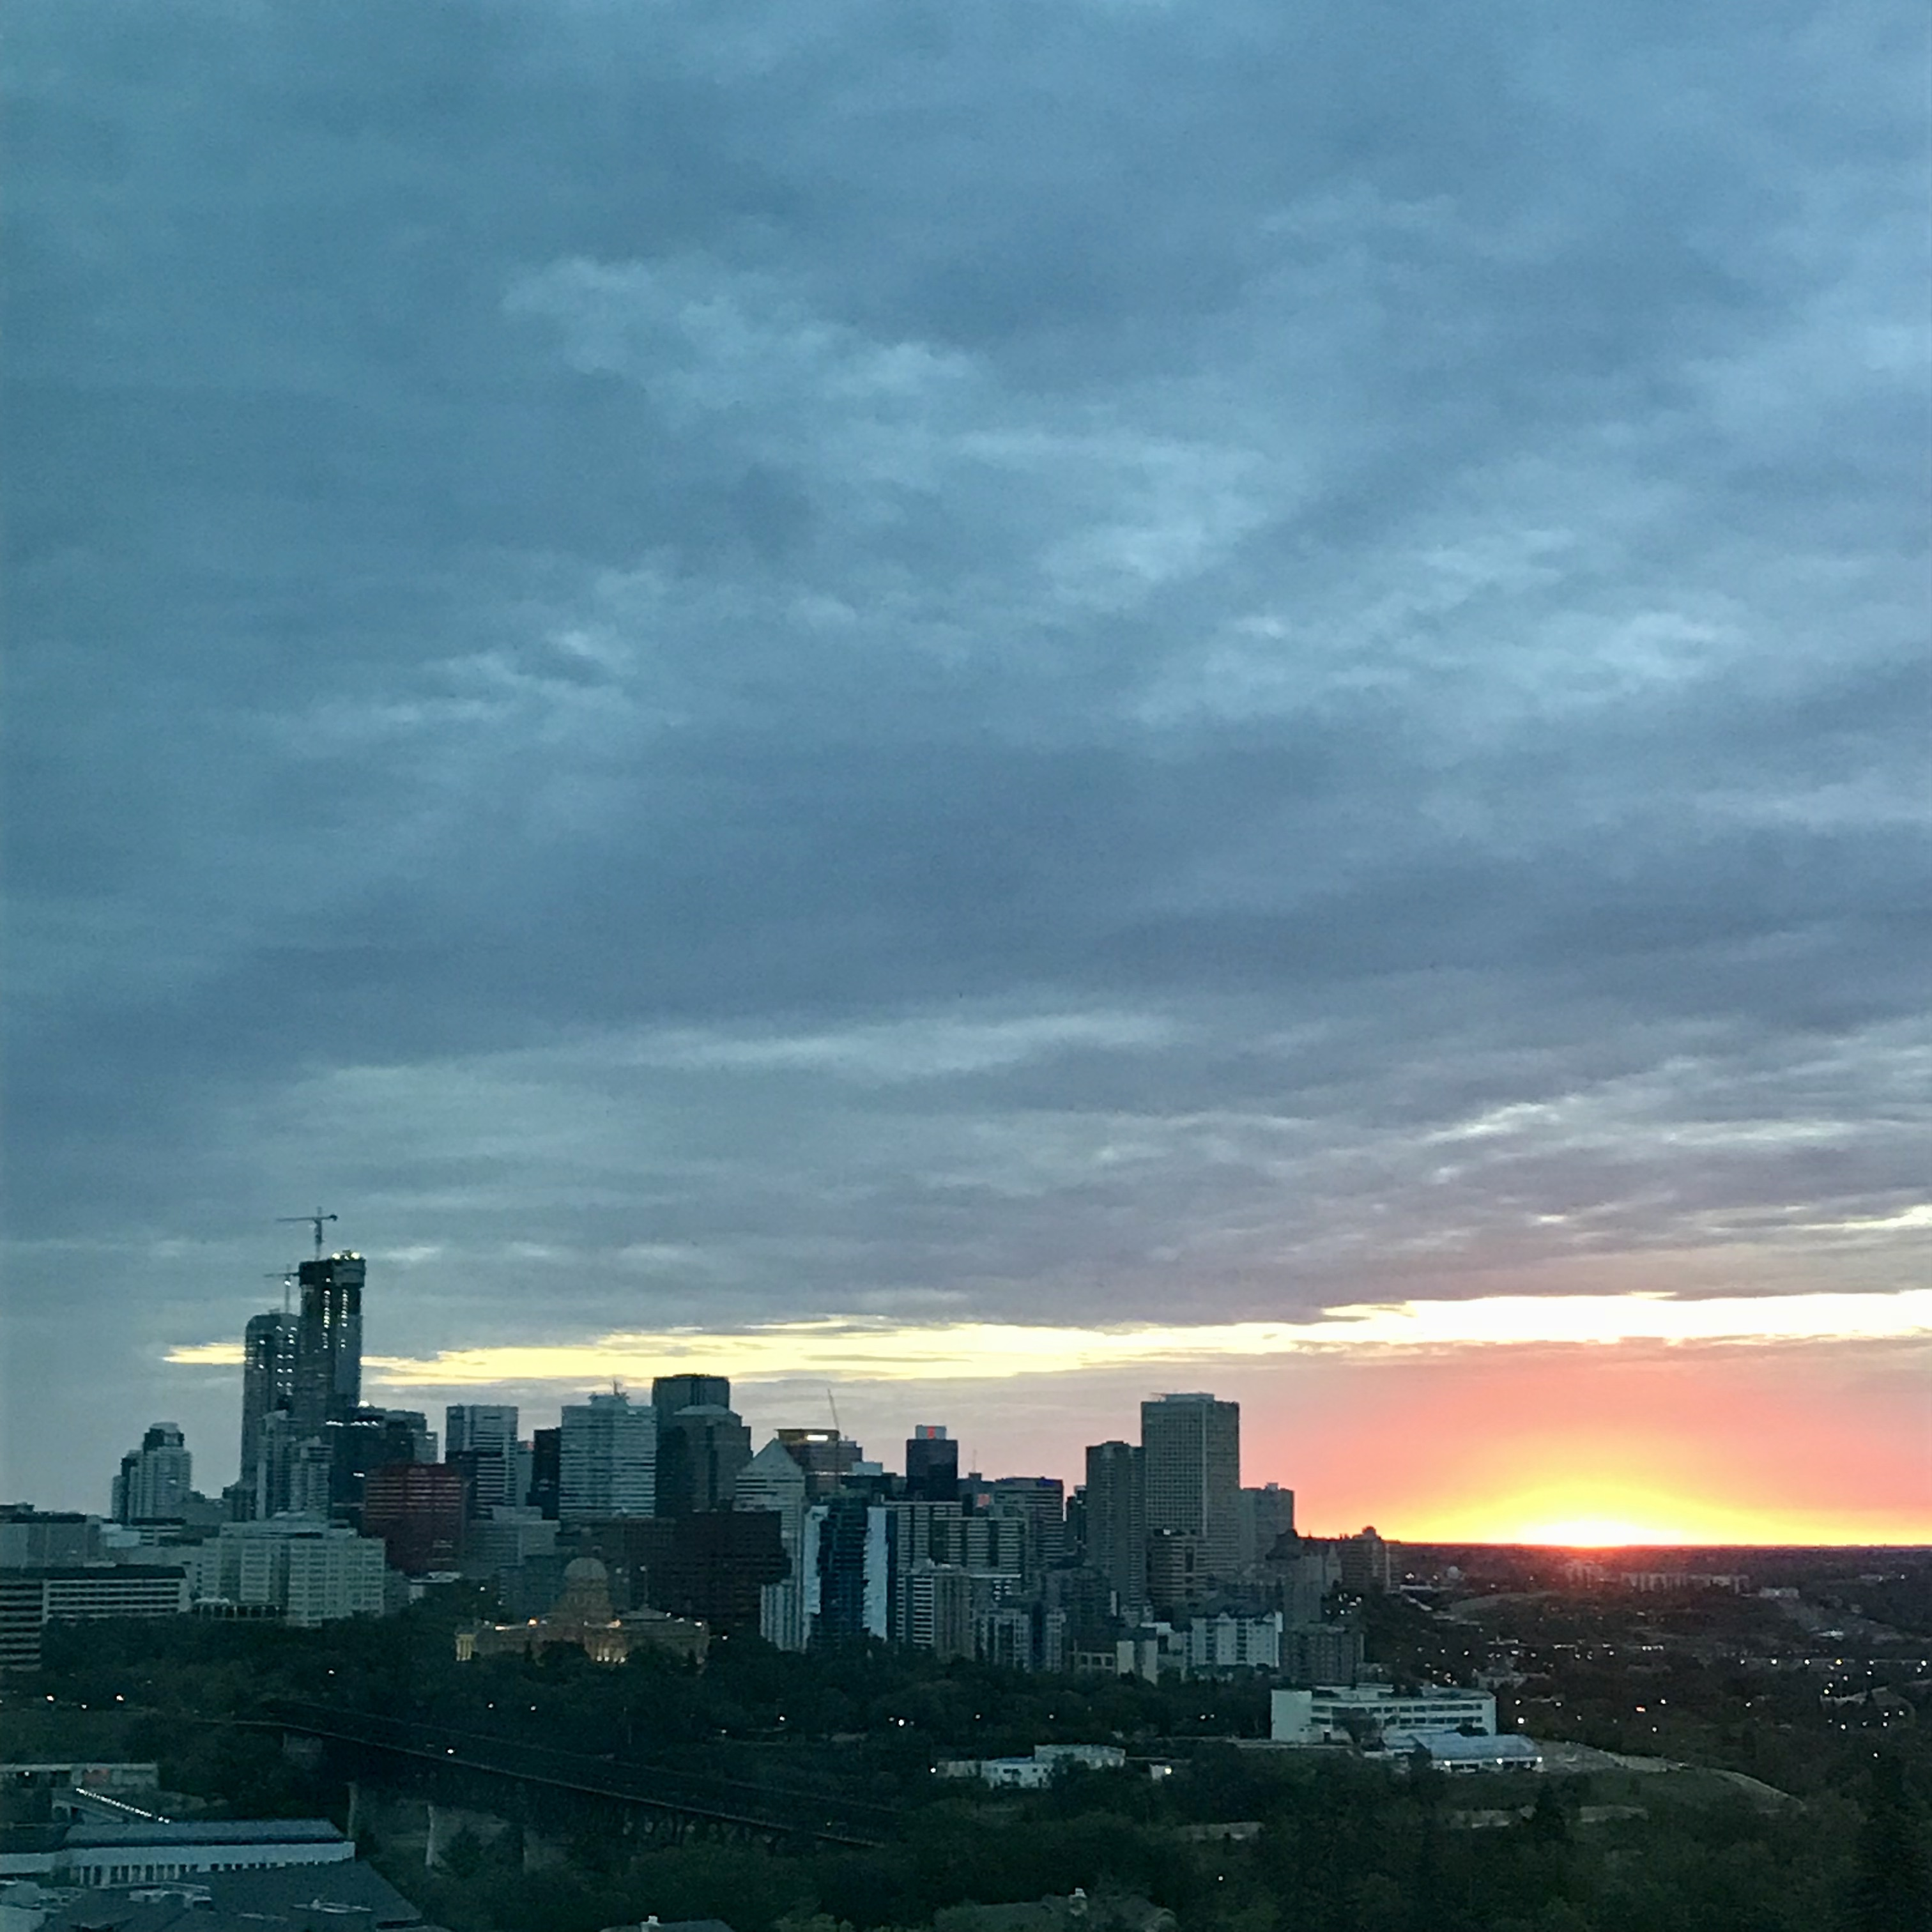 sunrise with a the downtown skyline of Edmonton